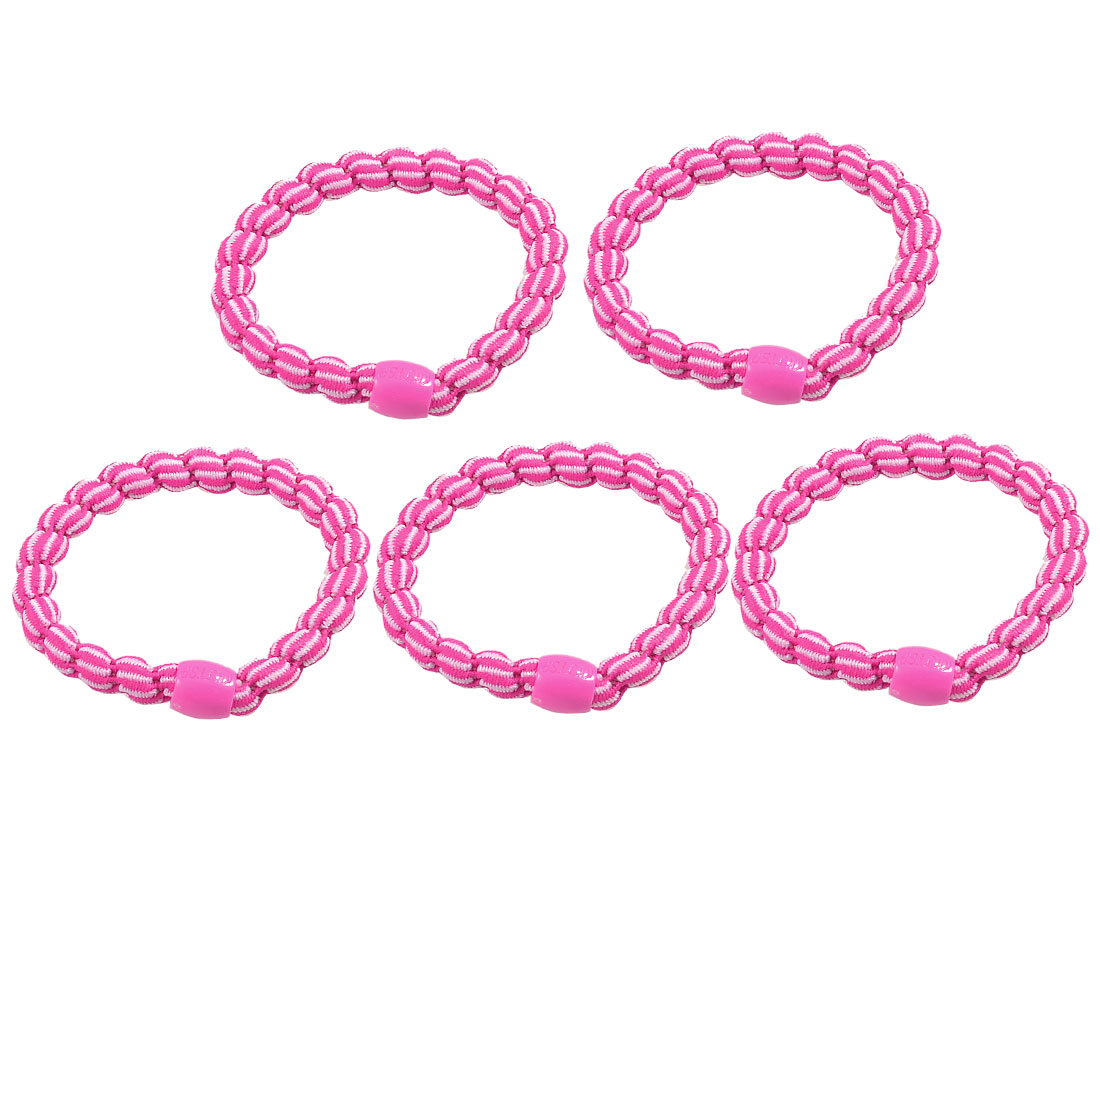 5 Pcs Plastic Bead Accent Fuchsia Elastic Bands Hair Ties Ponytail Holders